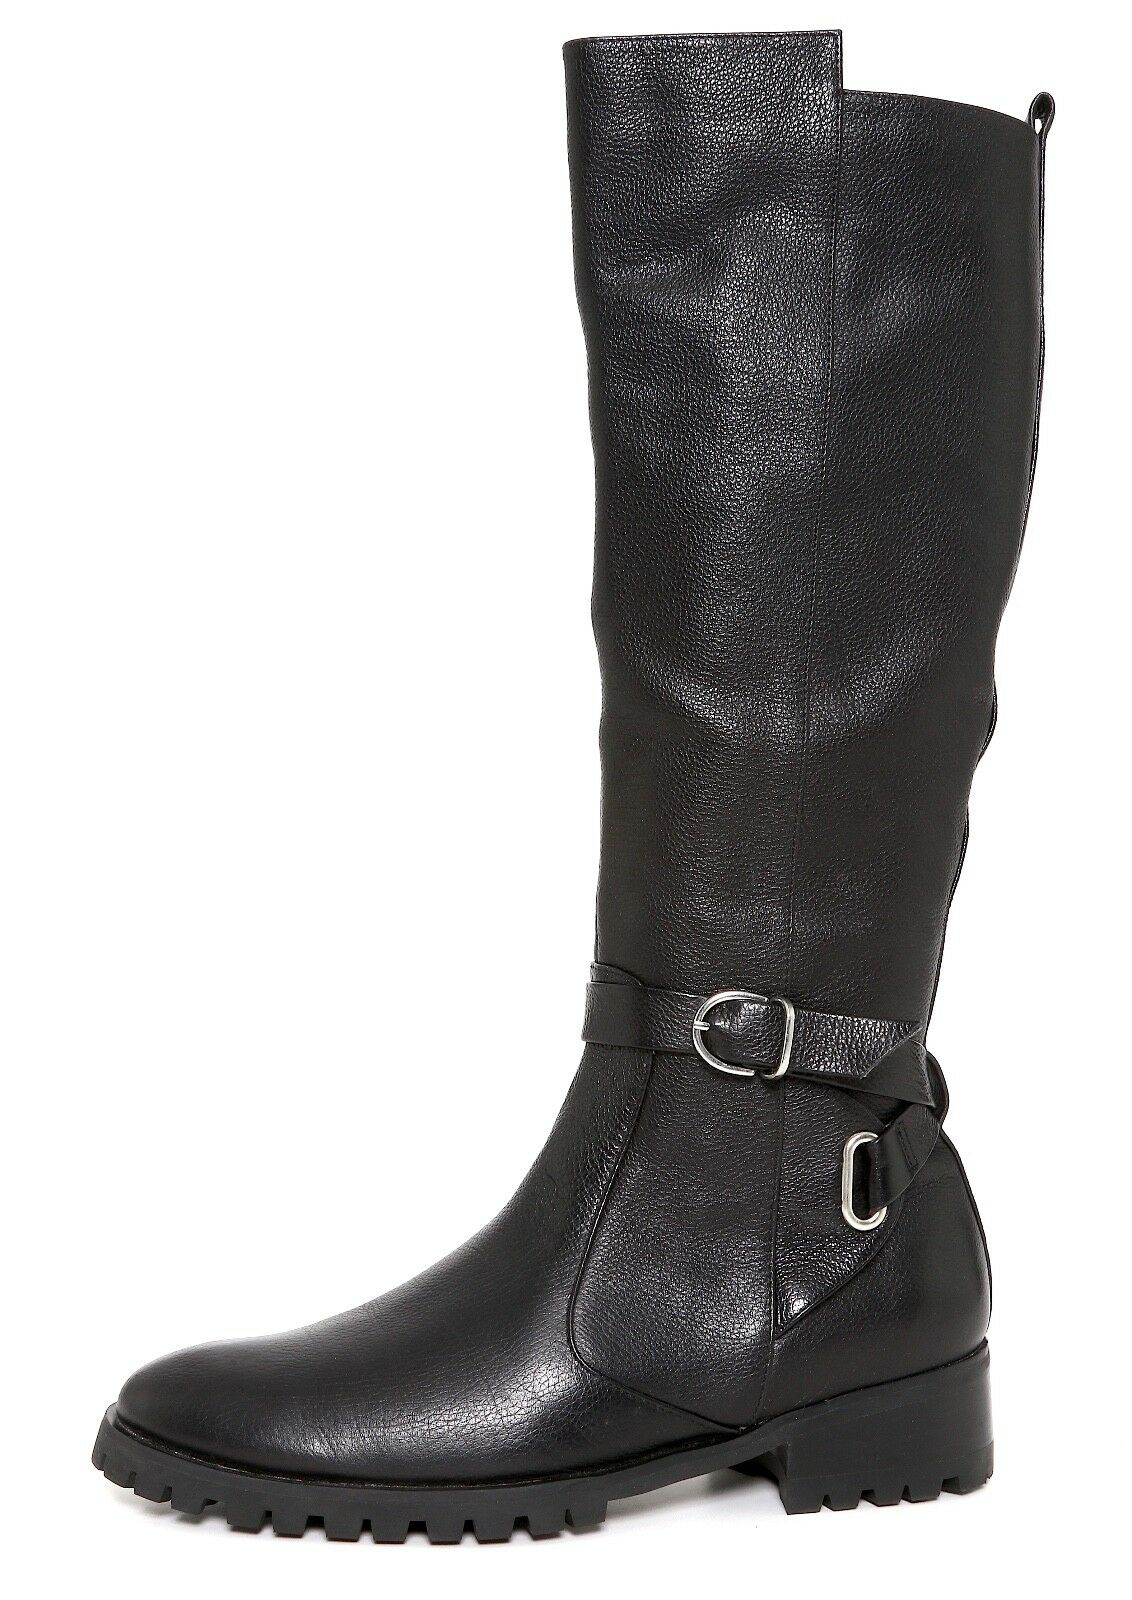 Tesori Valencia Leather Leather Leather Boot Black Women Sz 7.5M 7919 cd3af5